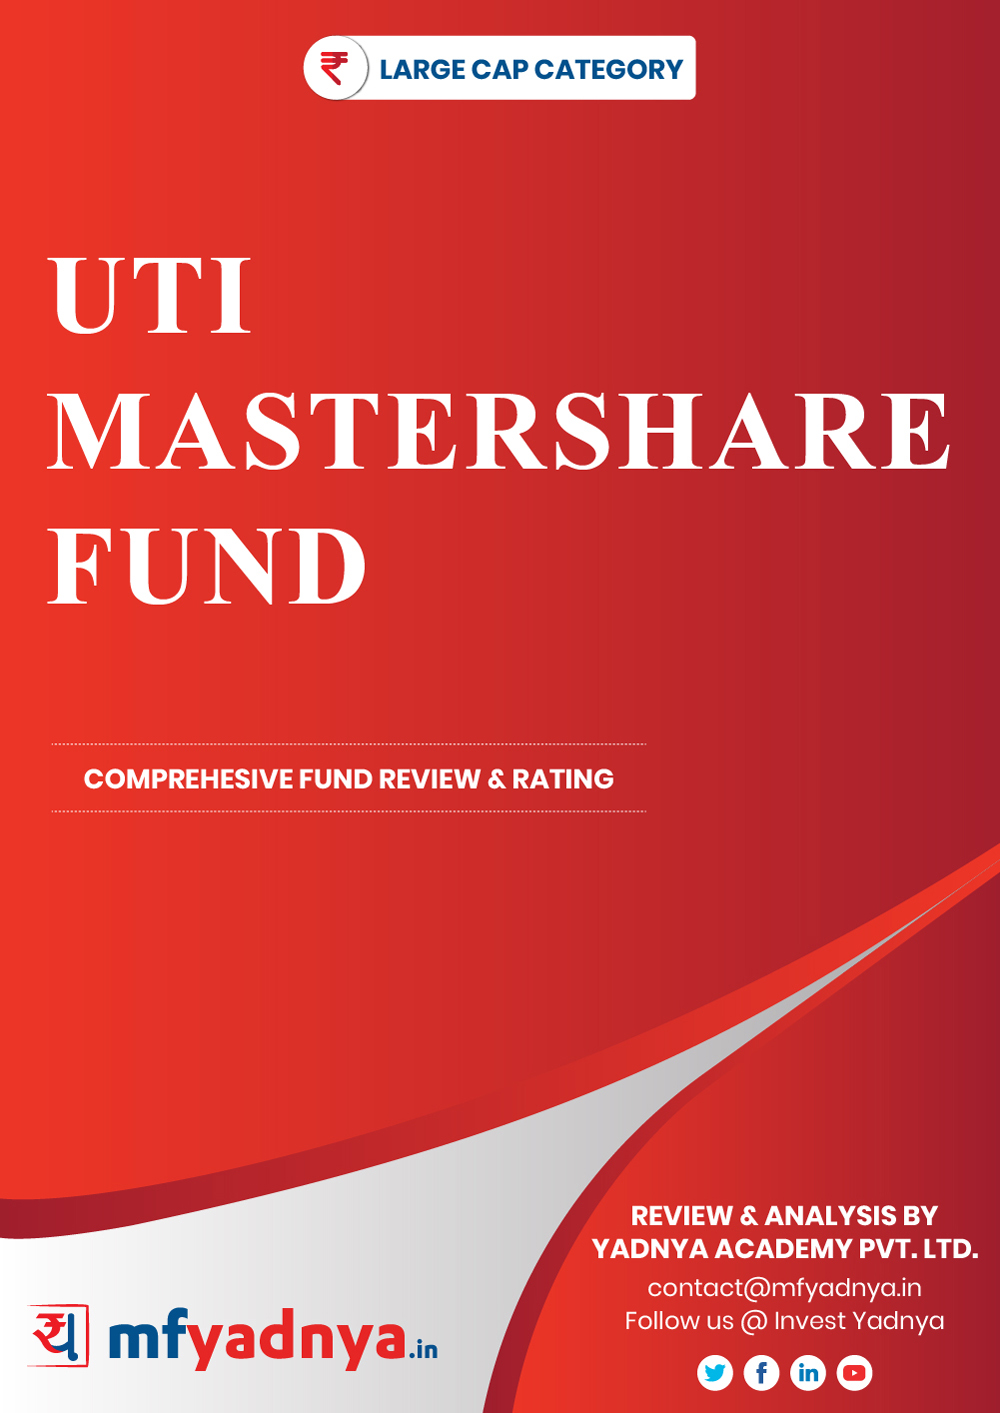 This e-book offers a comprehensive mutual fund review review of UTI Mastershare Fund - Large Cap Category. It reviews the fund's return, ratio, allocation etc. ✔ Detailed Mutual Fund Analysis ✔ Latest Research Reports